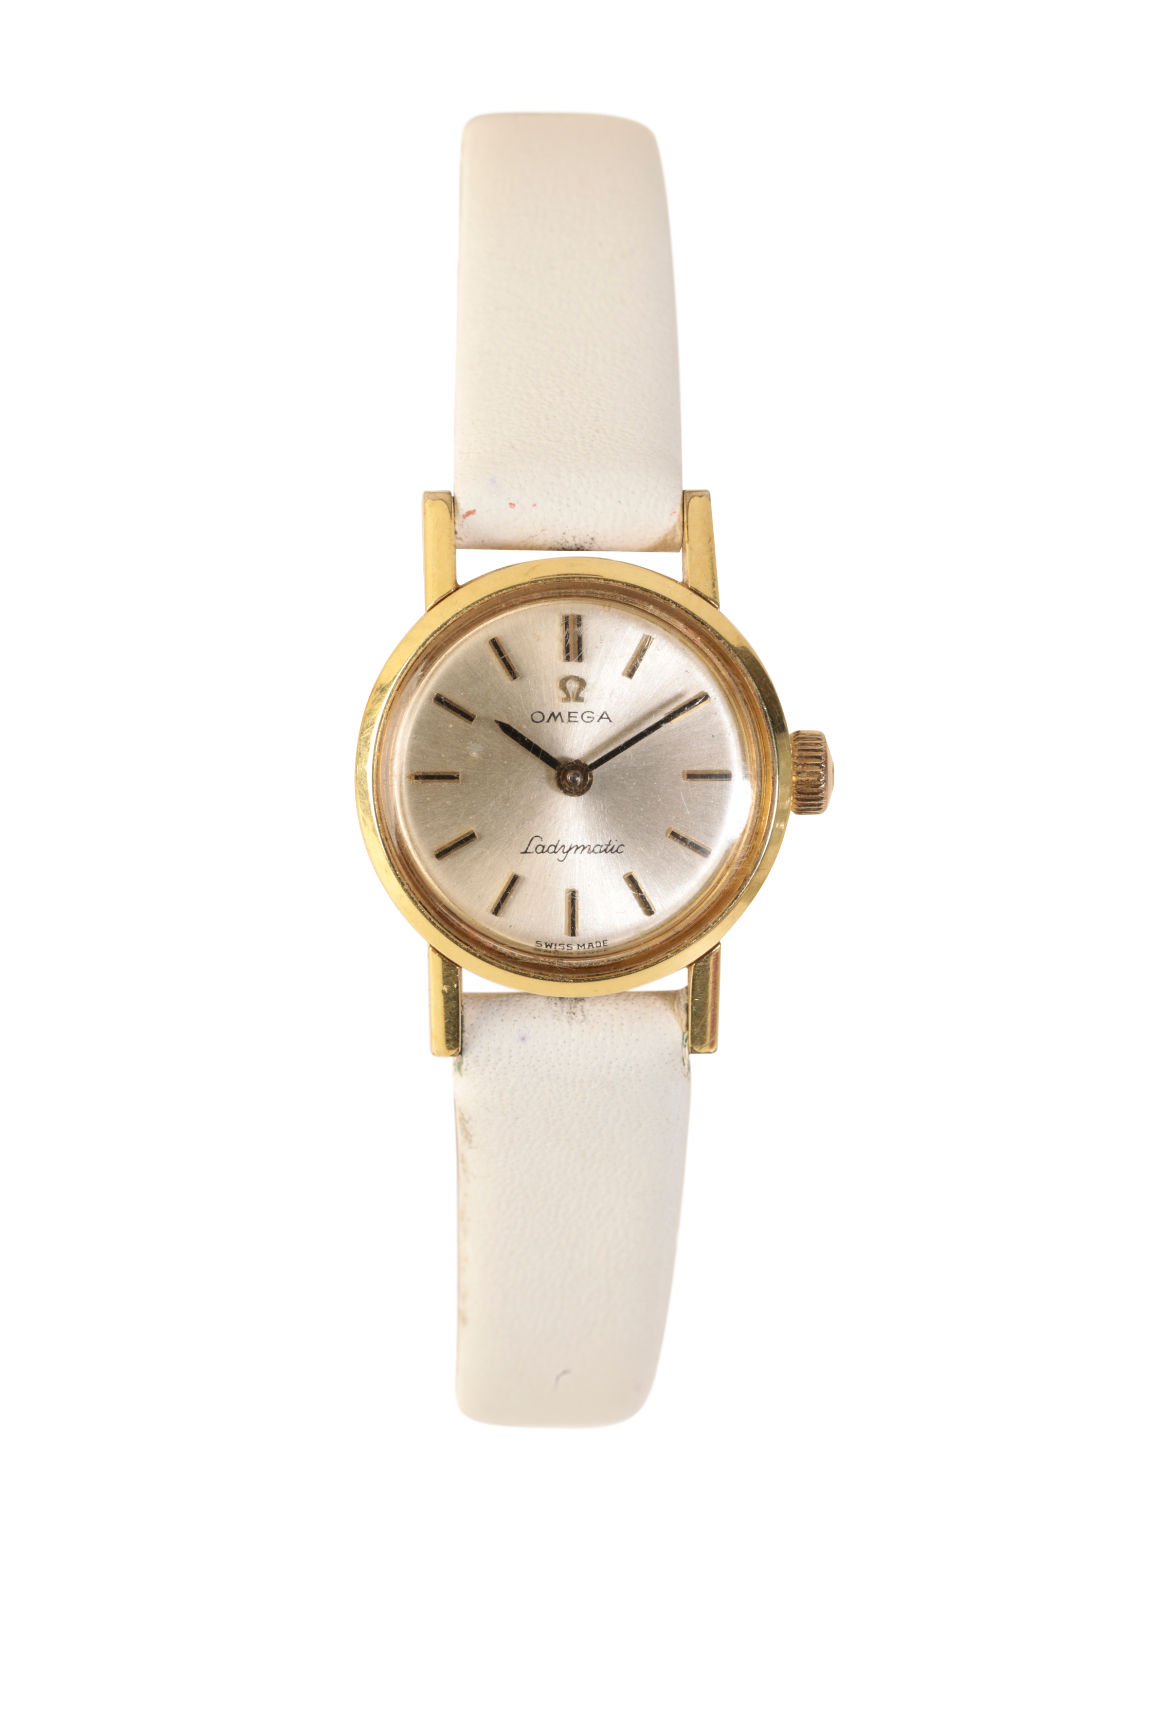 OMEGA LADY'S GOLD PLATED WRIST WATCH - Image 2 of 3